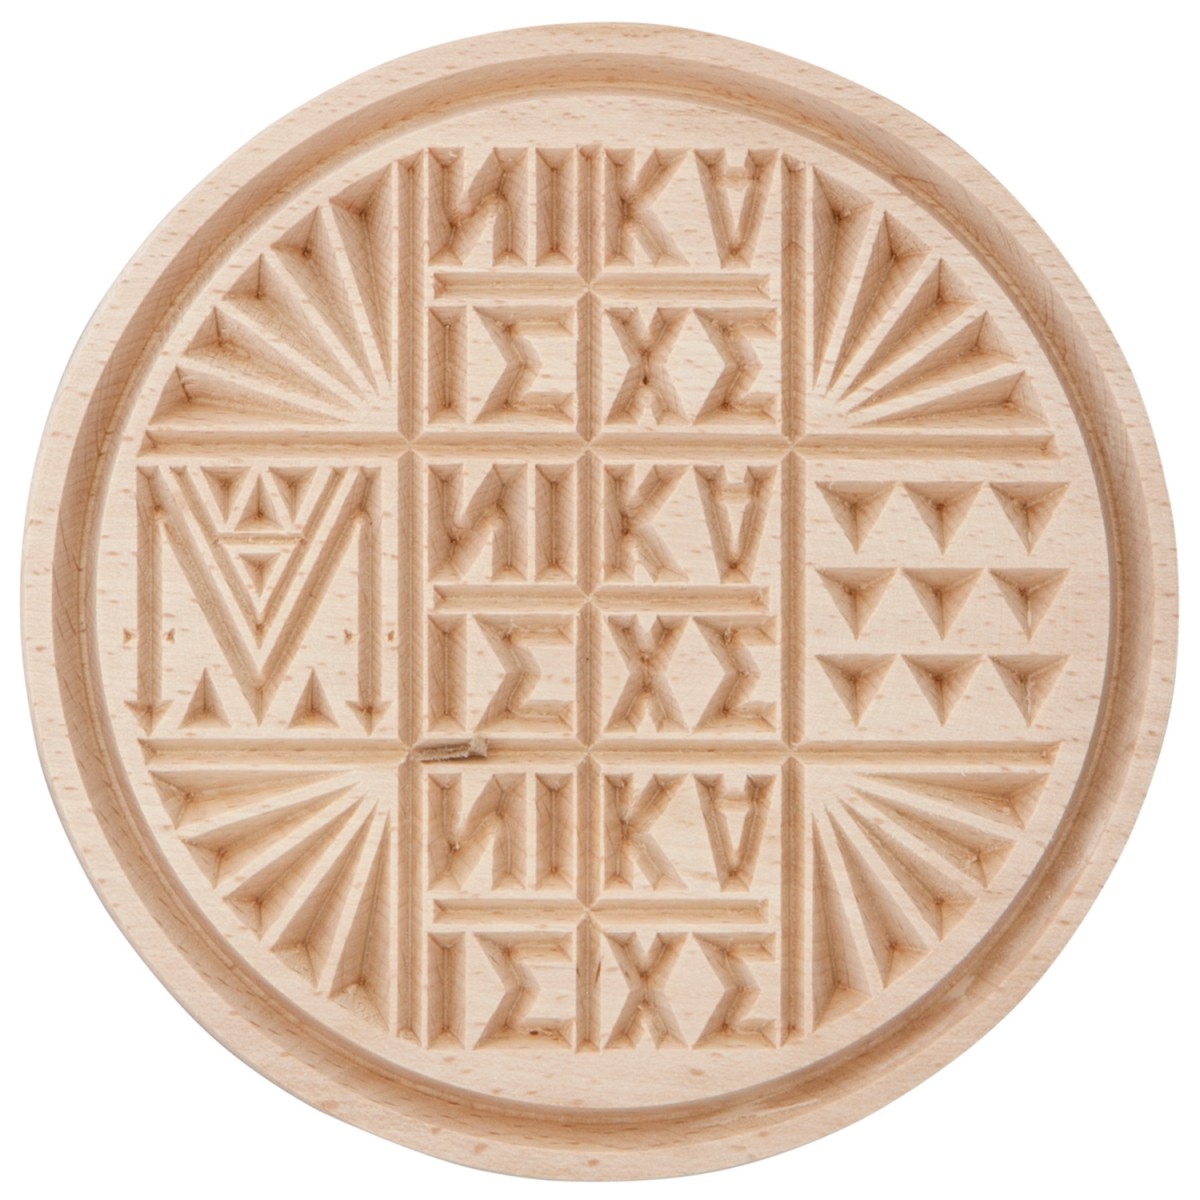 Prosforo-Holy-Bread-Seal-Wooden-Carved-1